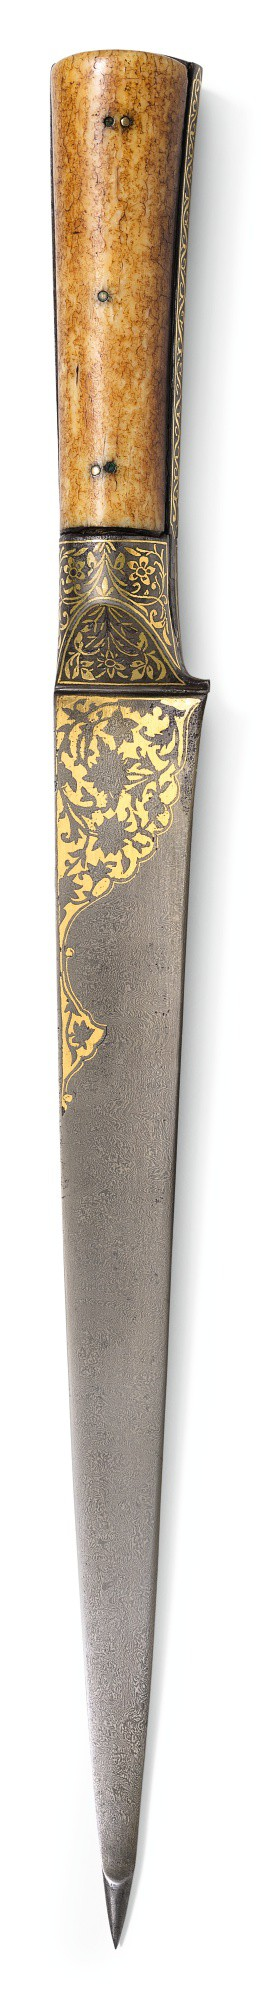 A LARGE WATERED-STEEL AND GOLD-INLAID DAGGER (KARD) WITH MARINE-IVORY HILT, PERSIA, SAFAVID, 17TH/18TH CENTURY